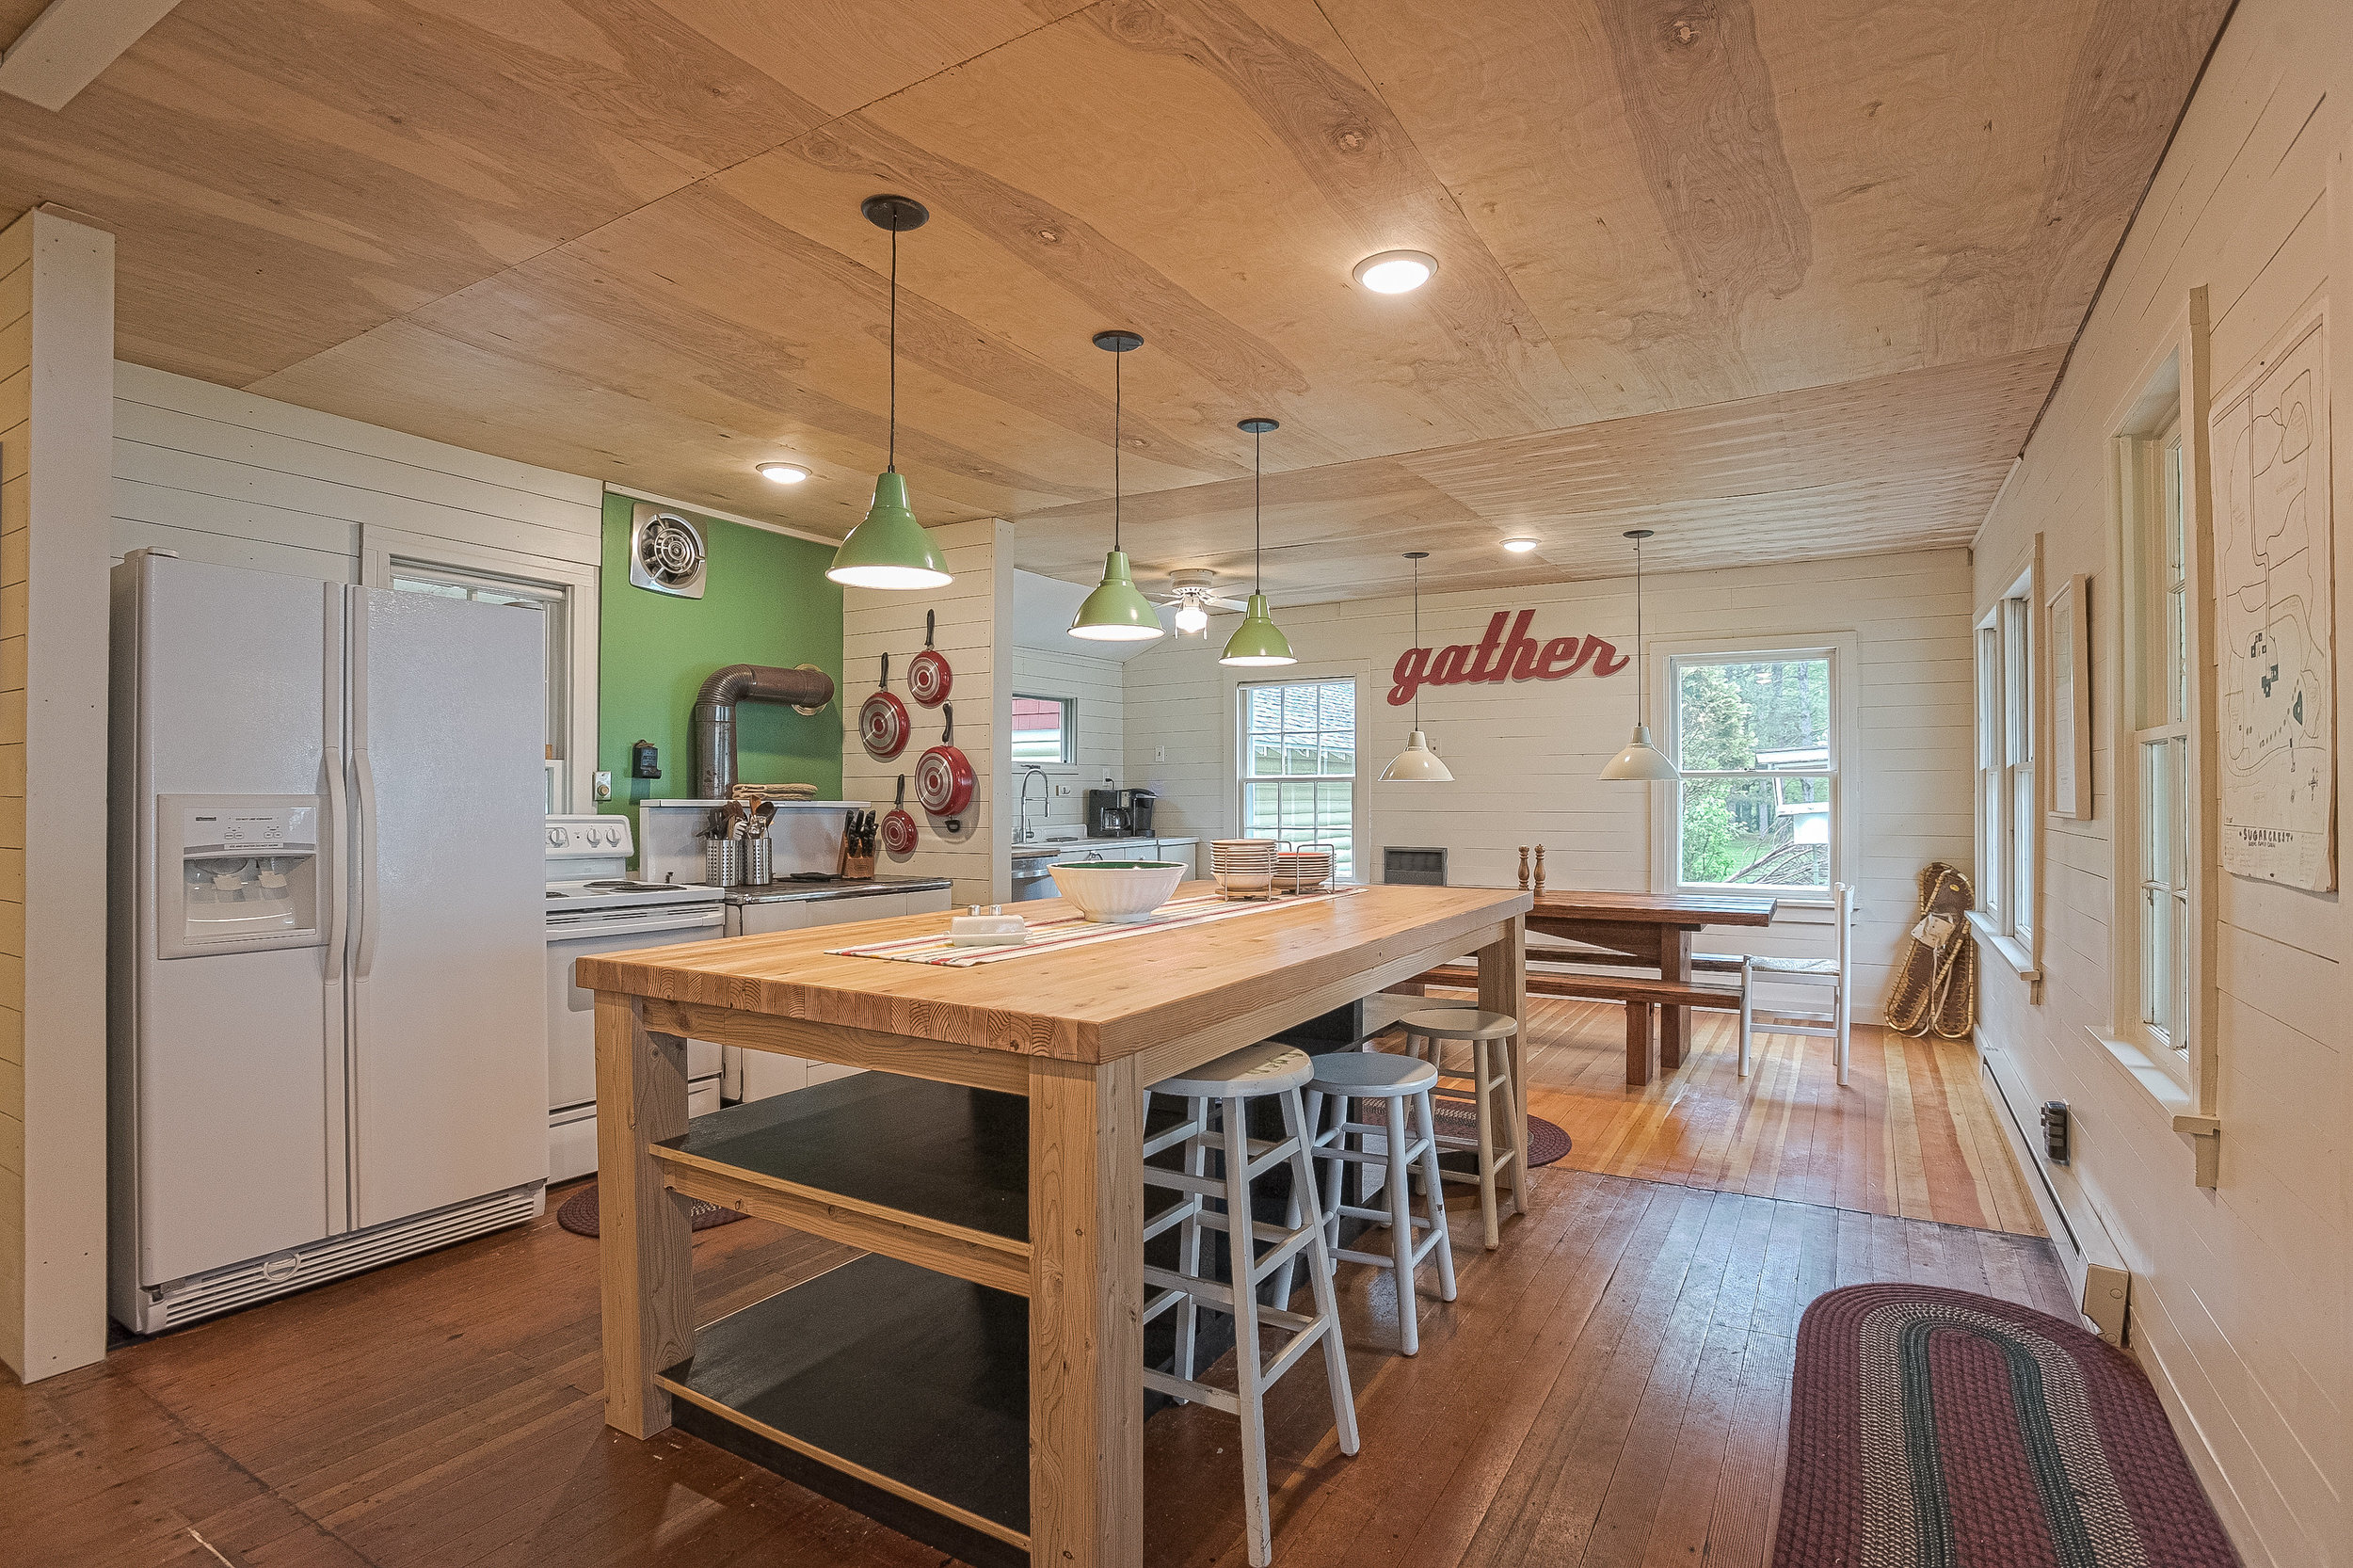 Retro kitchen open to living room with original hardwoods, big butcher block island for staging with plenty of storage and a long dining table for group meals.